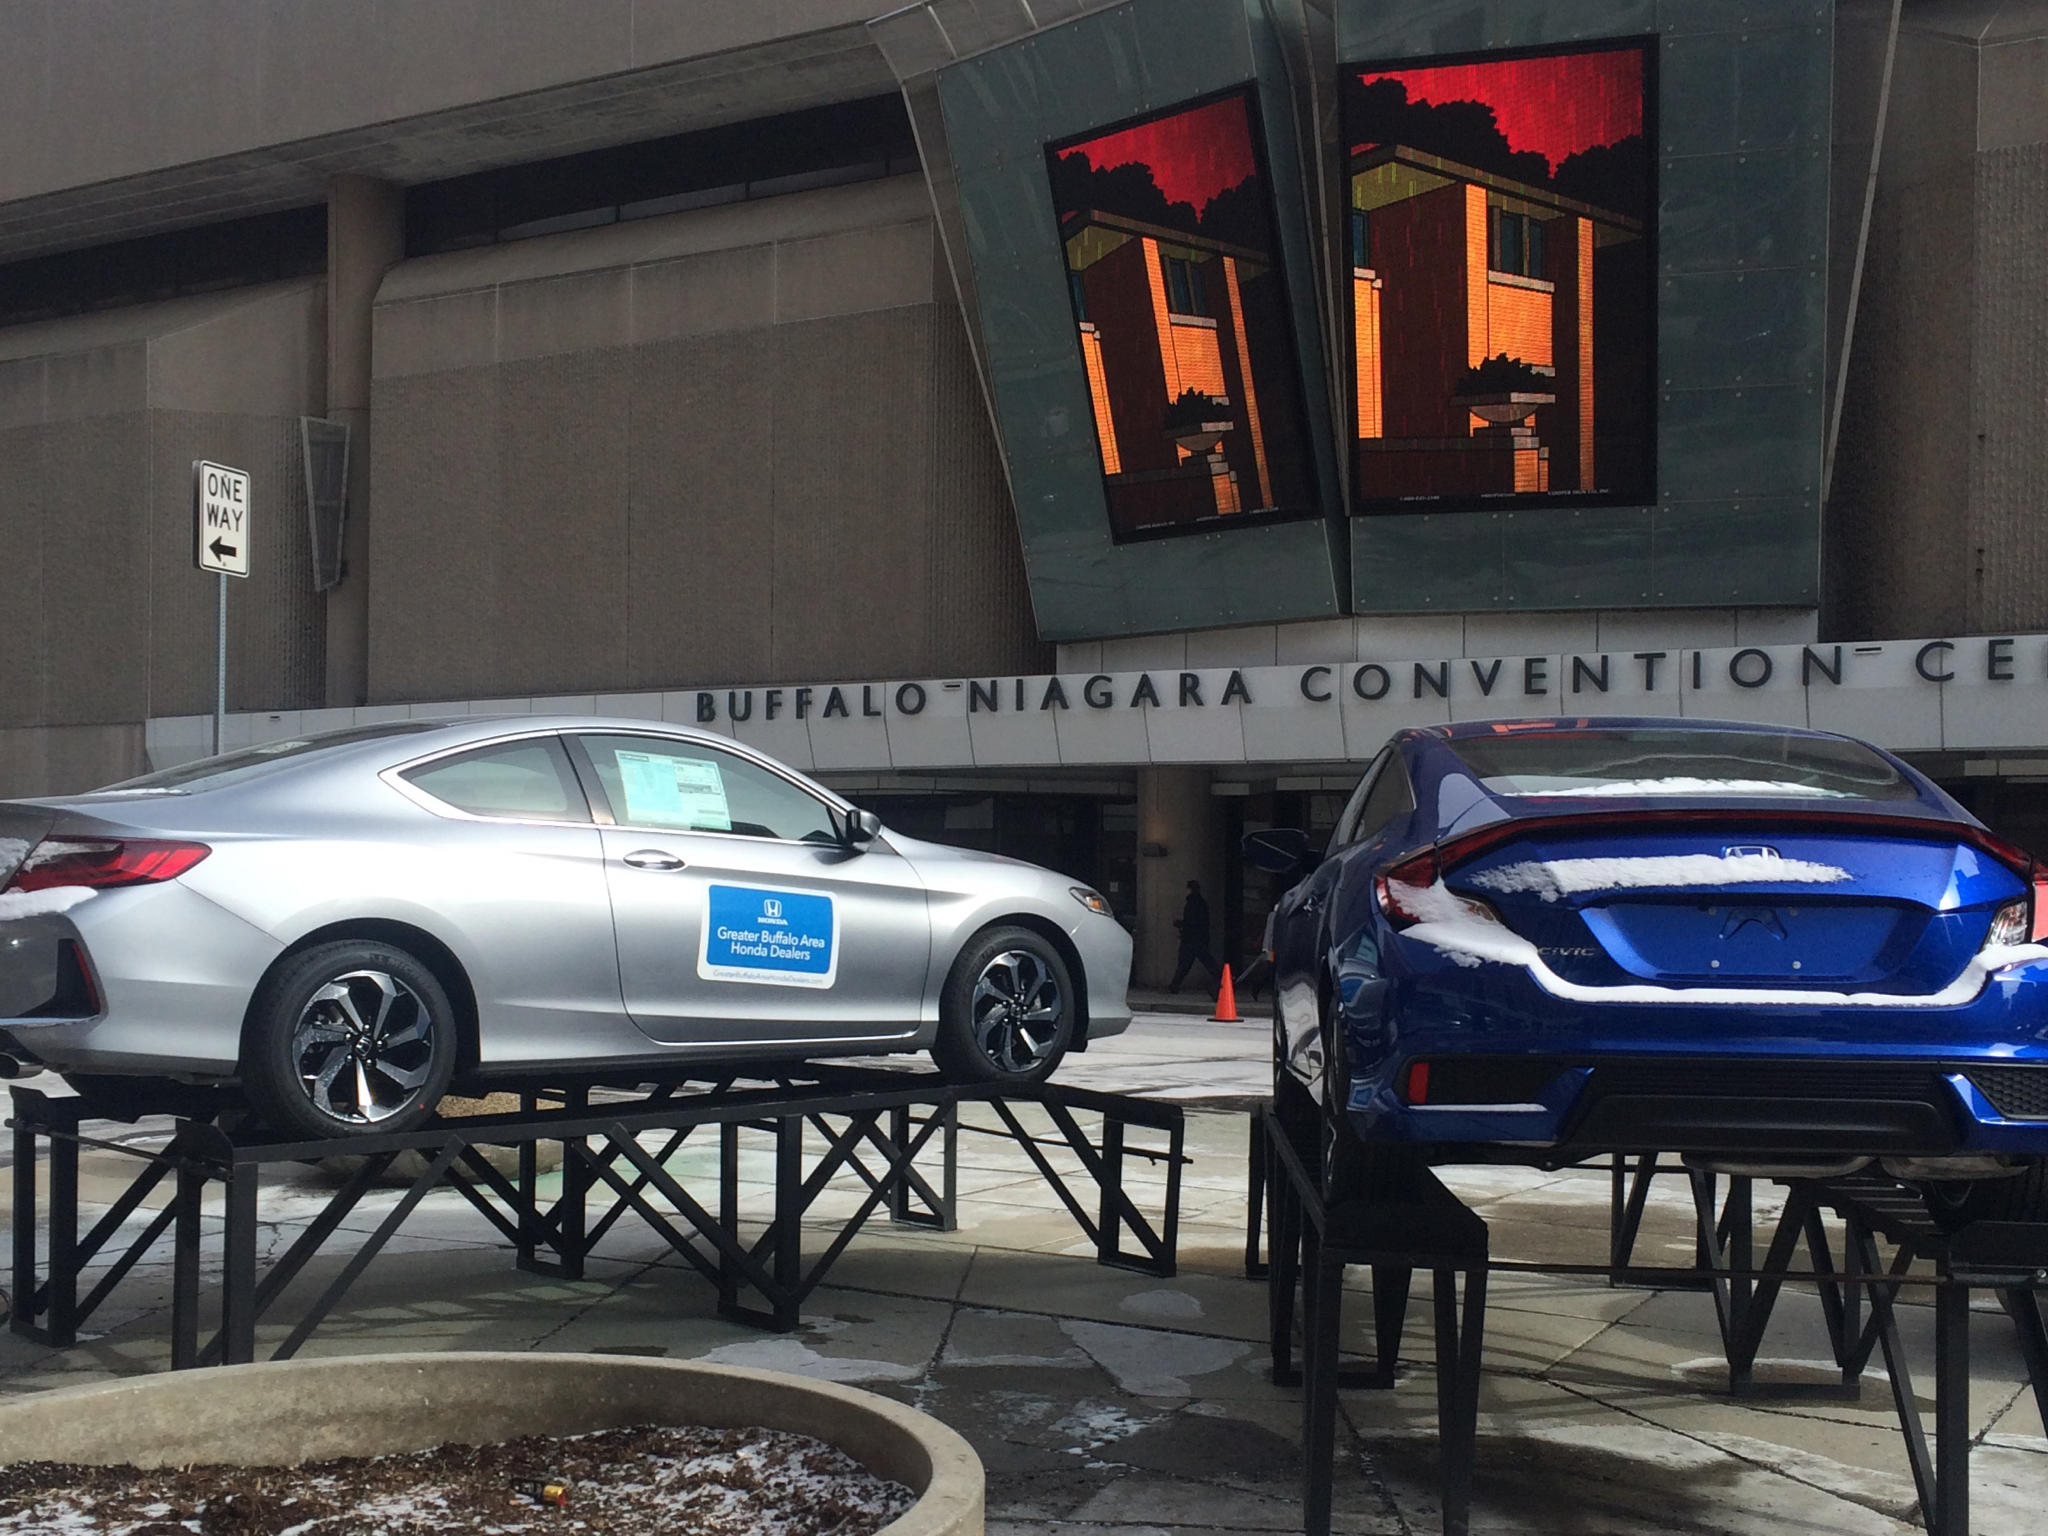 Auto Show Highlights New Models And High Tech Amenities WBFO - Buffalo car show